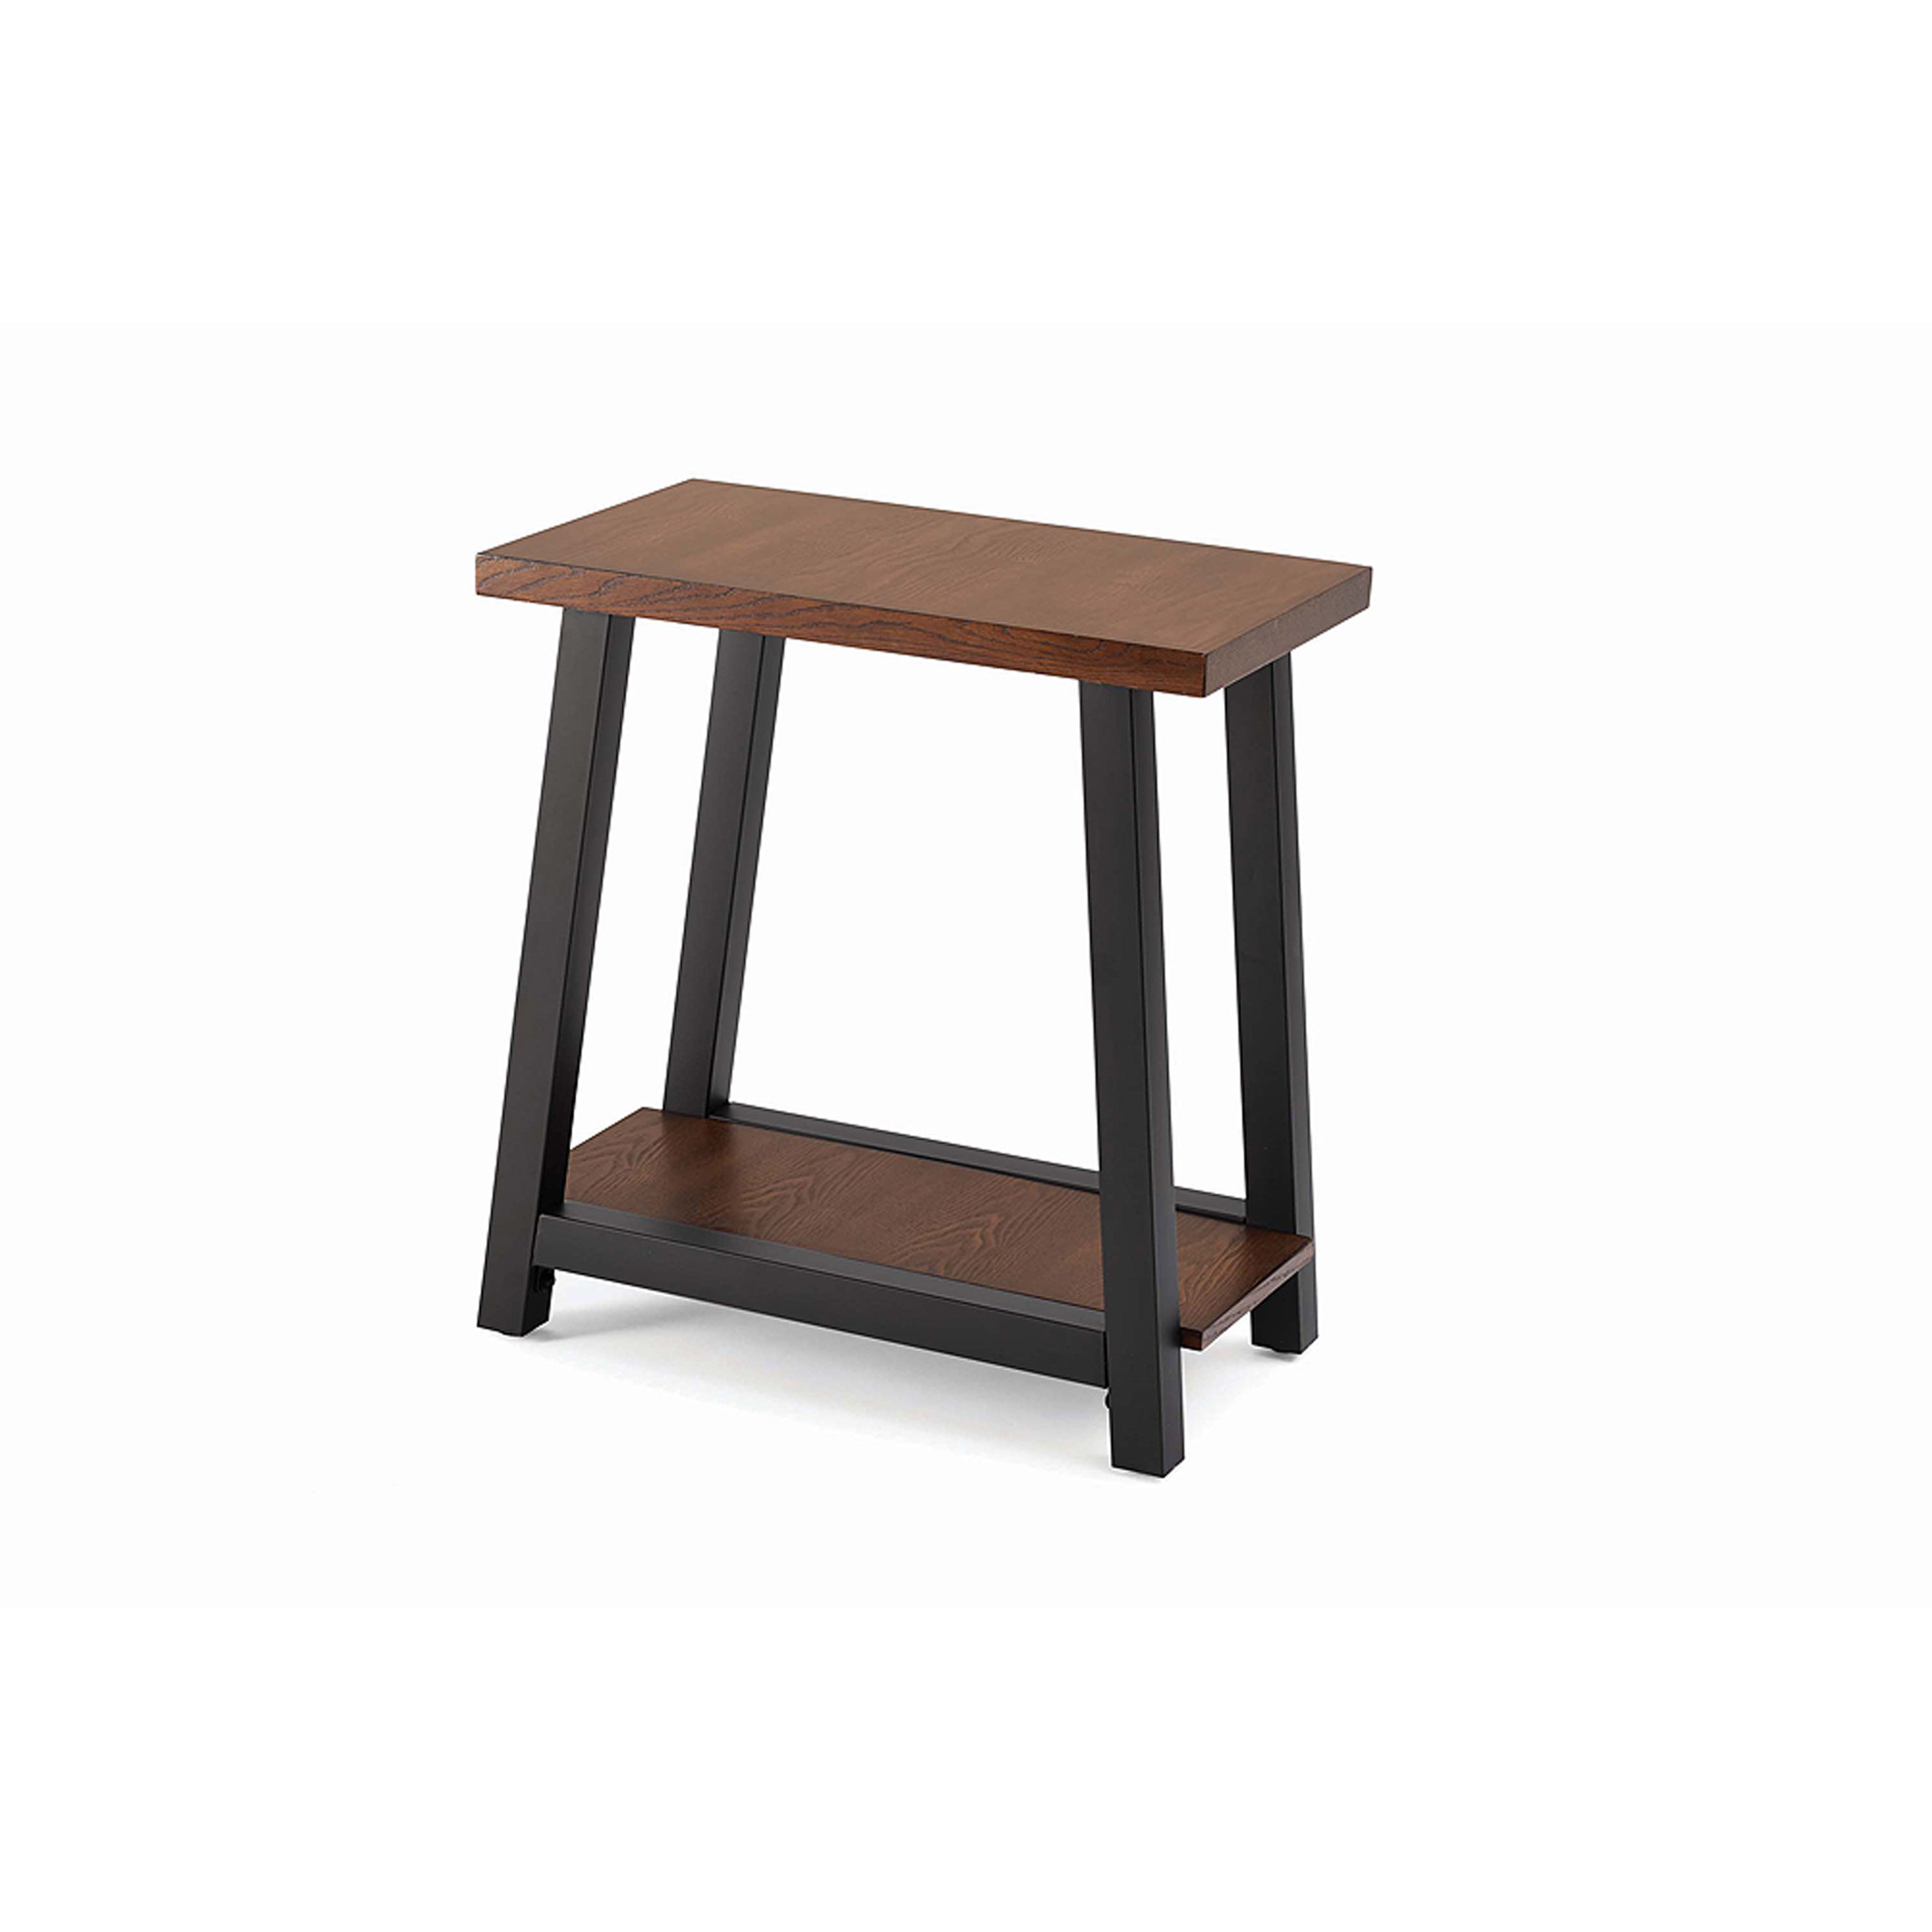 better homes and gardens mercer side table vintage oak accent bbq grill outdoor furniture sydney all glass coffee hallway target dale tiffany leilani lamp curved mirrored bedside